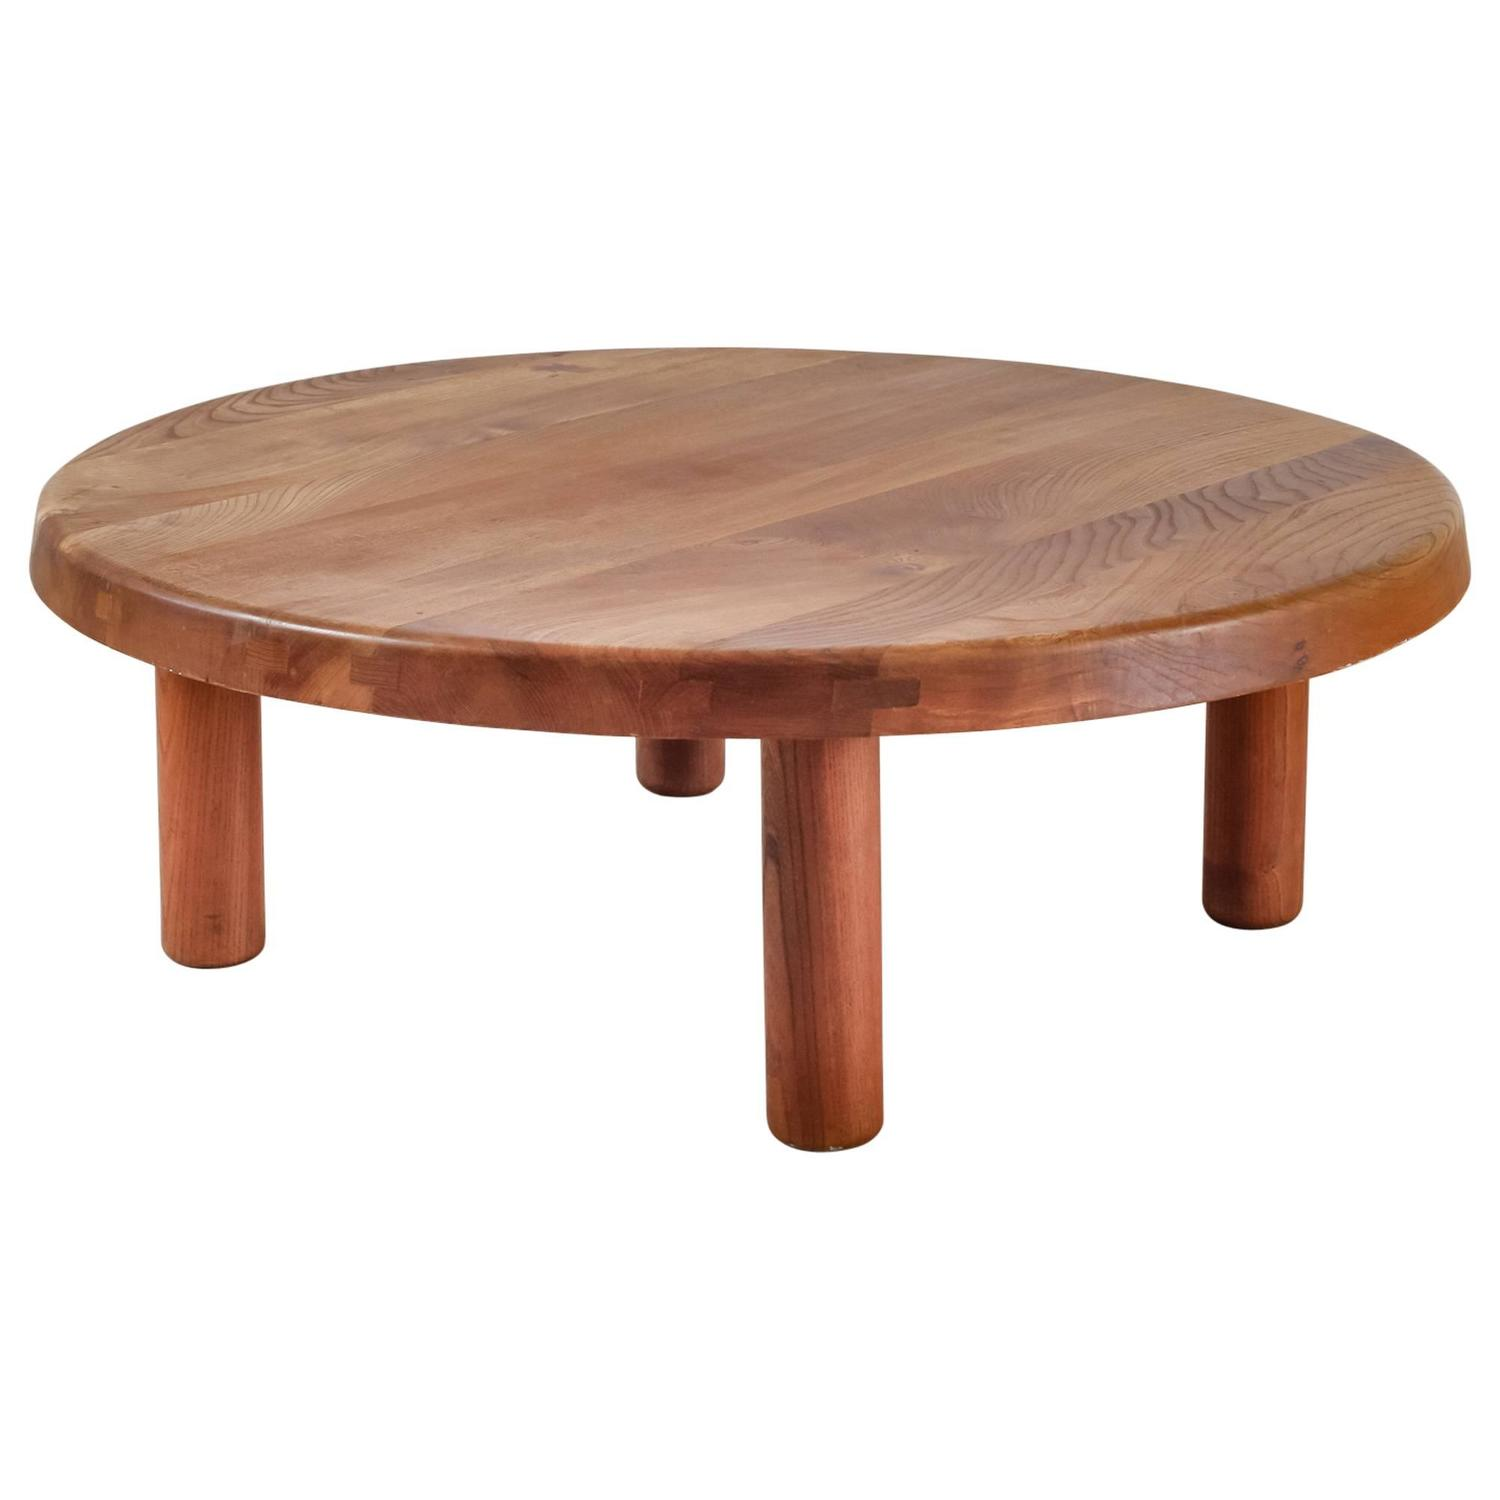 Rare pierre chapo large round campagne style elm coffee table france 1960s - Table style campagne ...